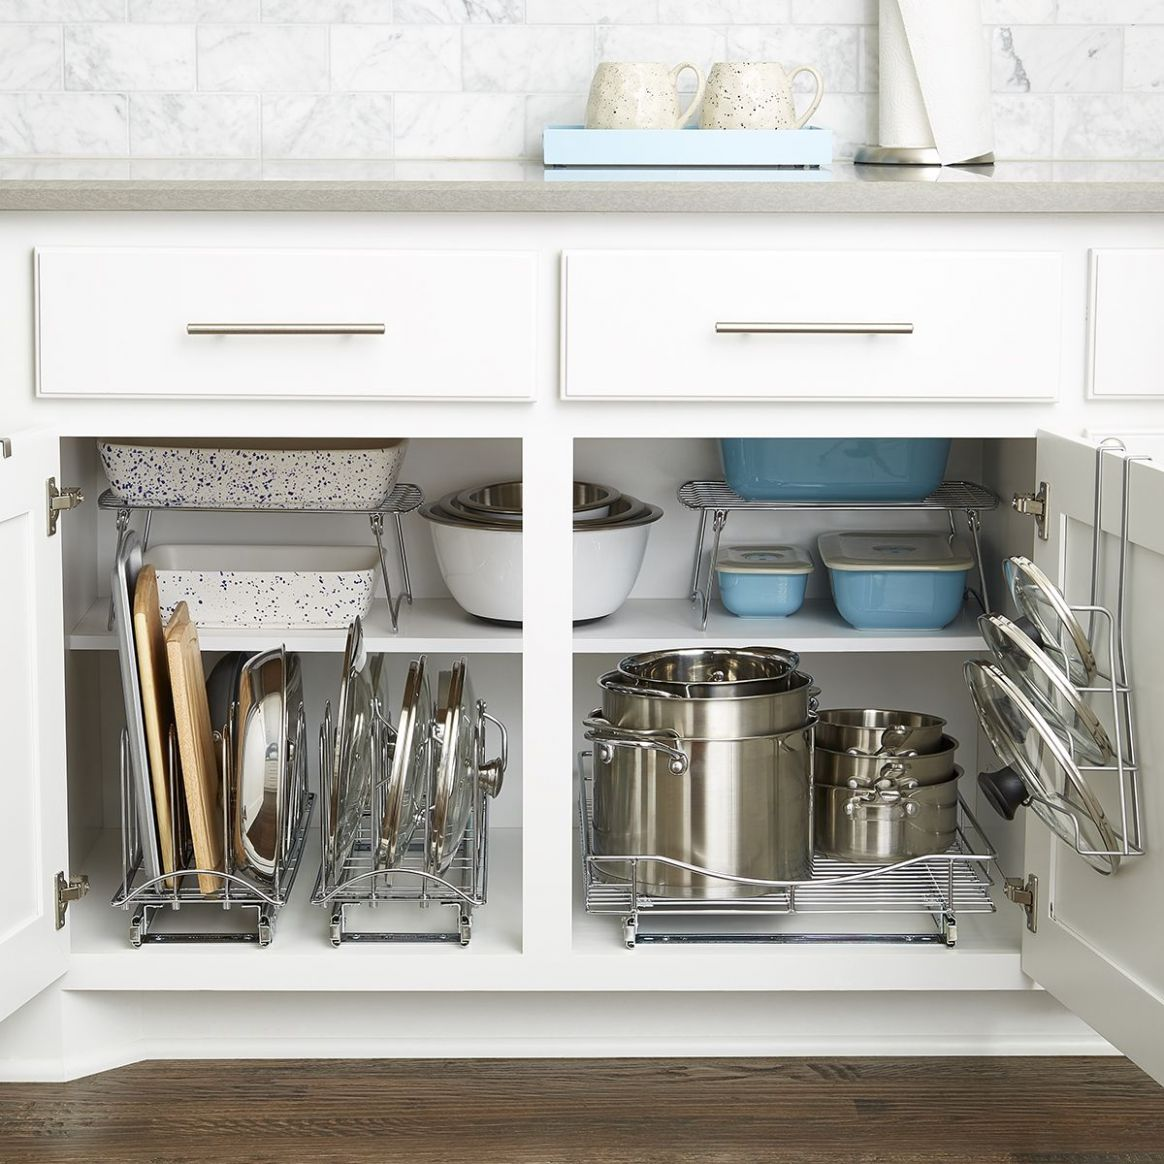 Organize Your Kitchen Like A Professional (With images) | Diy ...